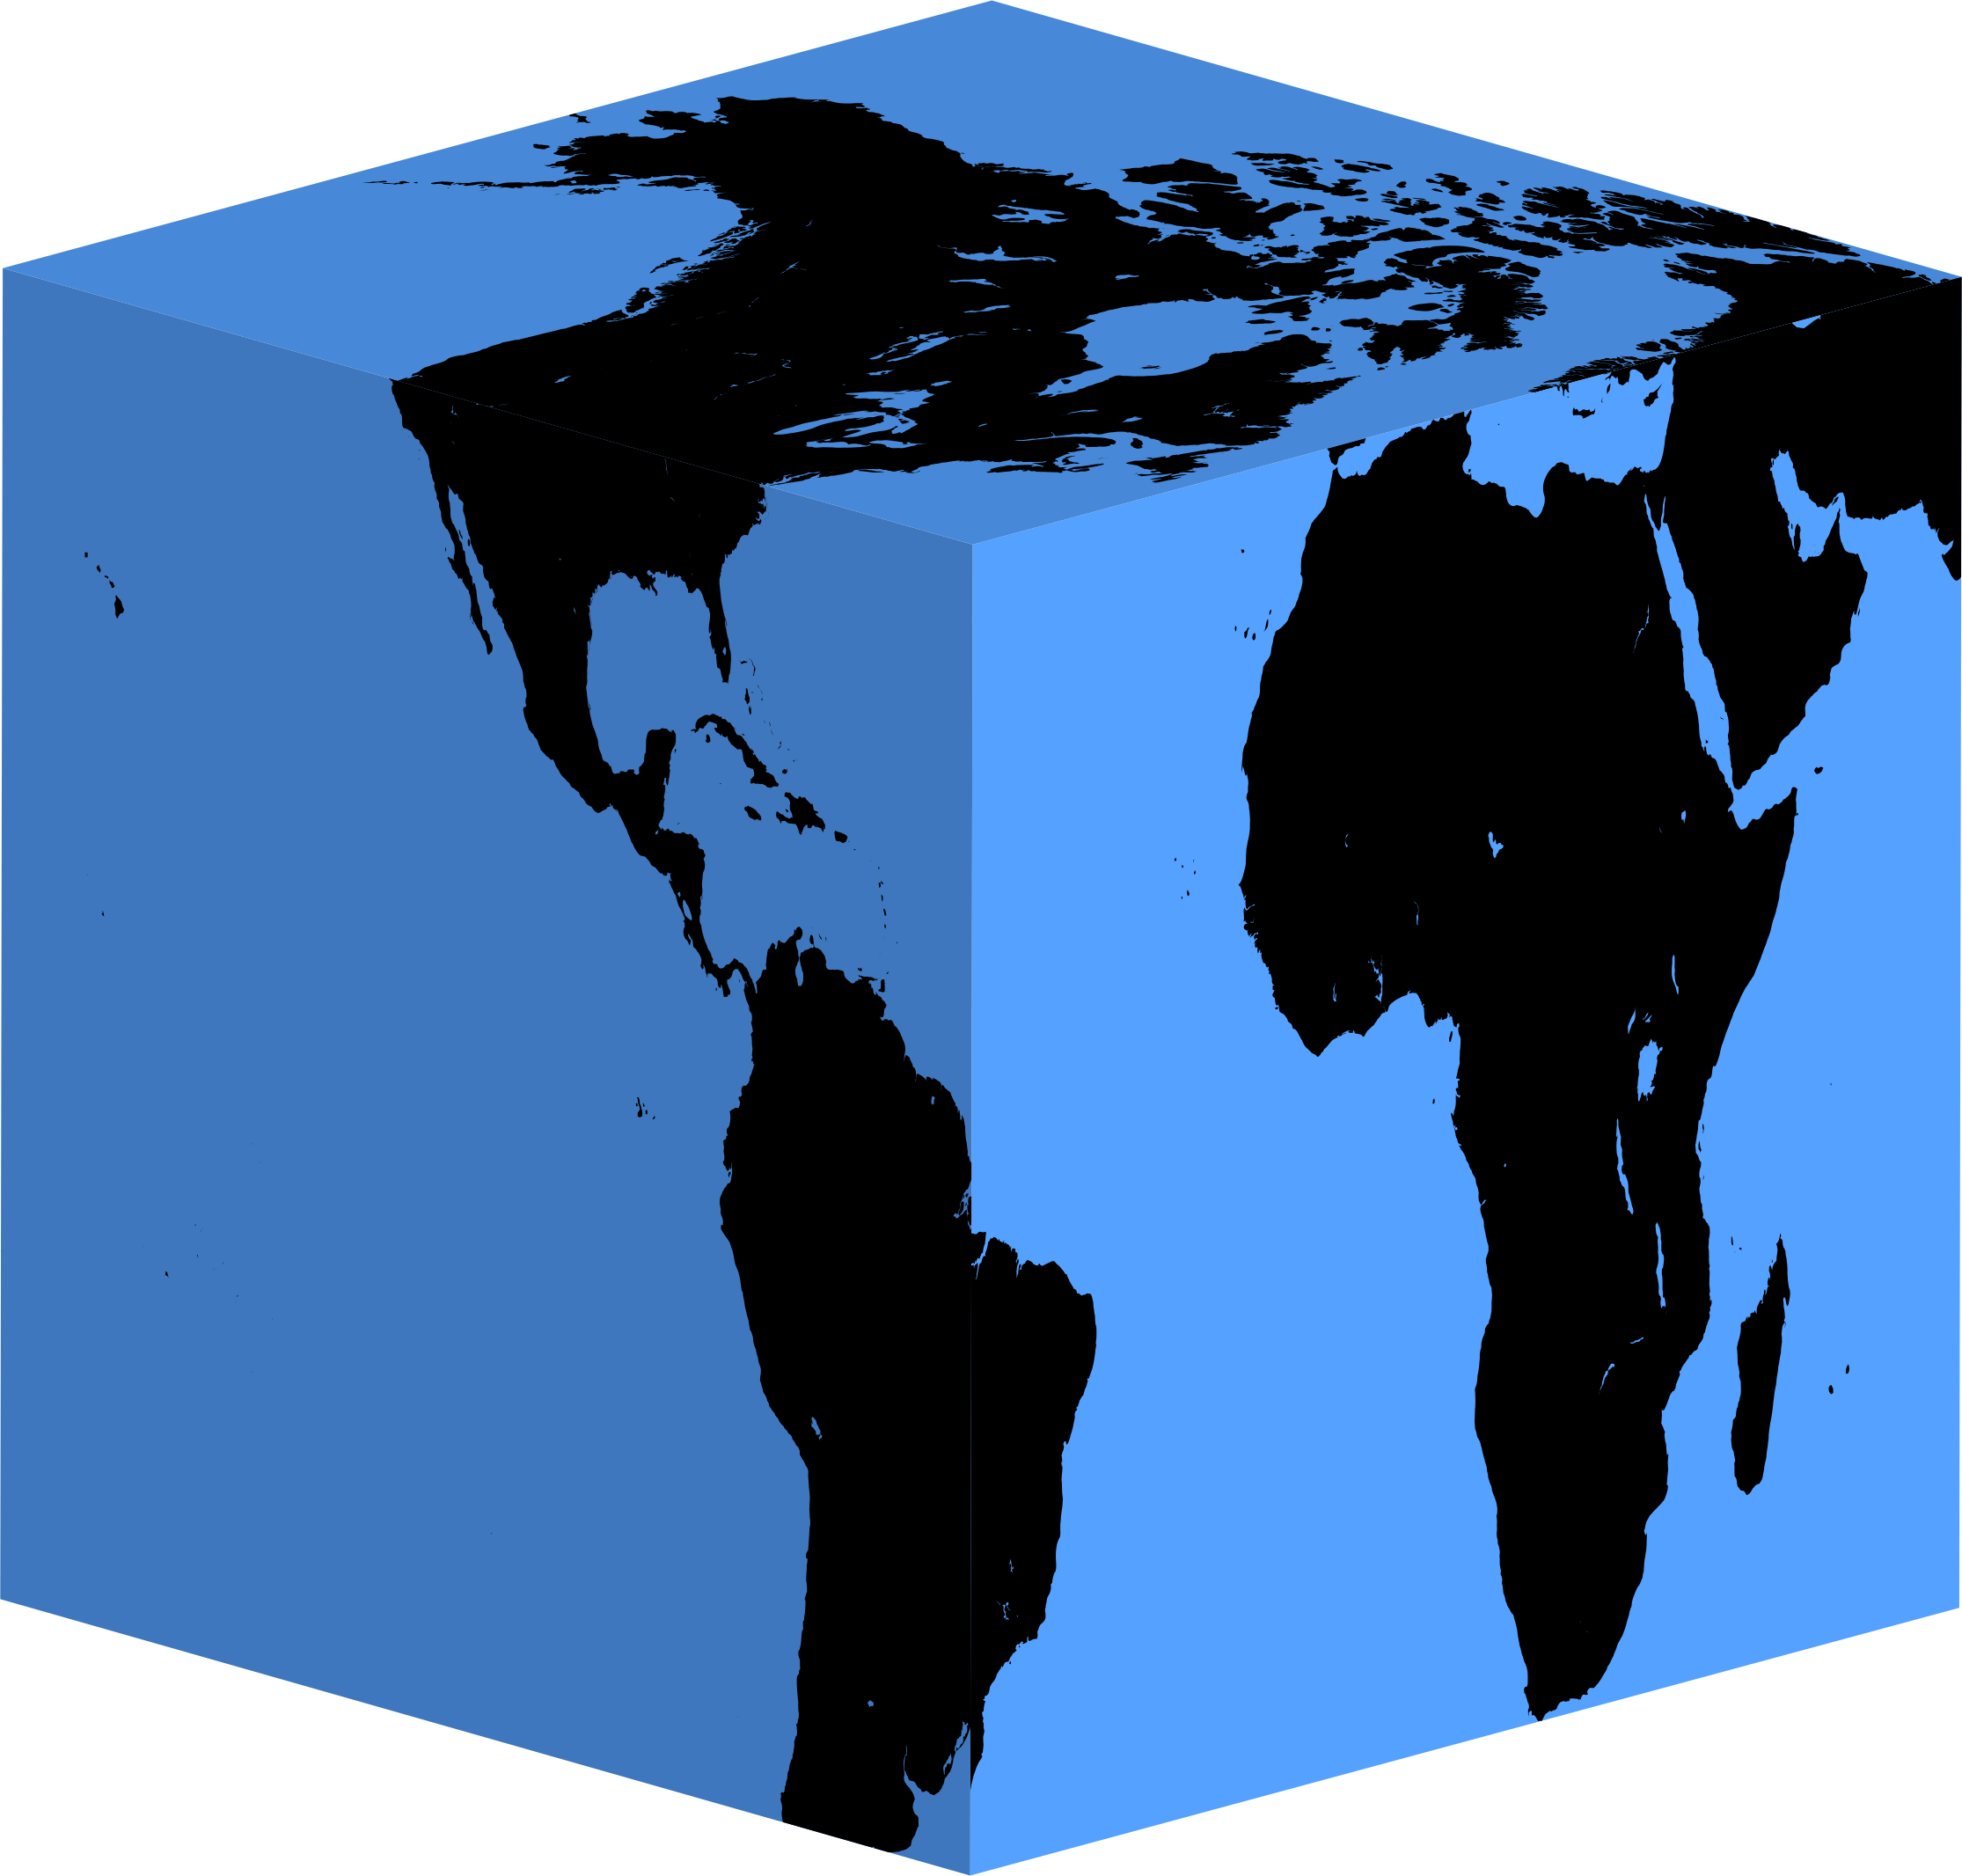 Cube Earth Silhouette by GDJ